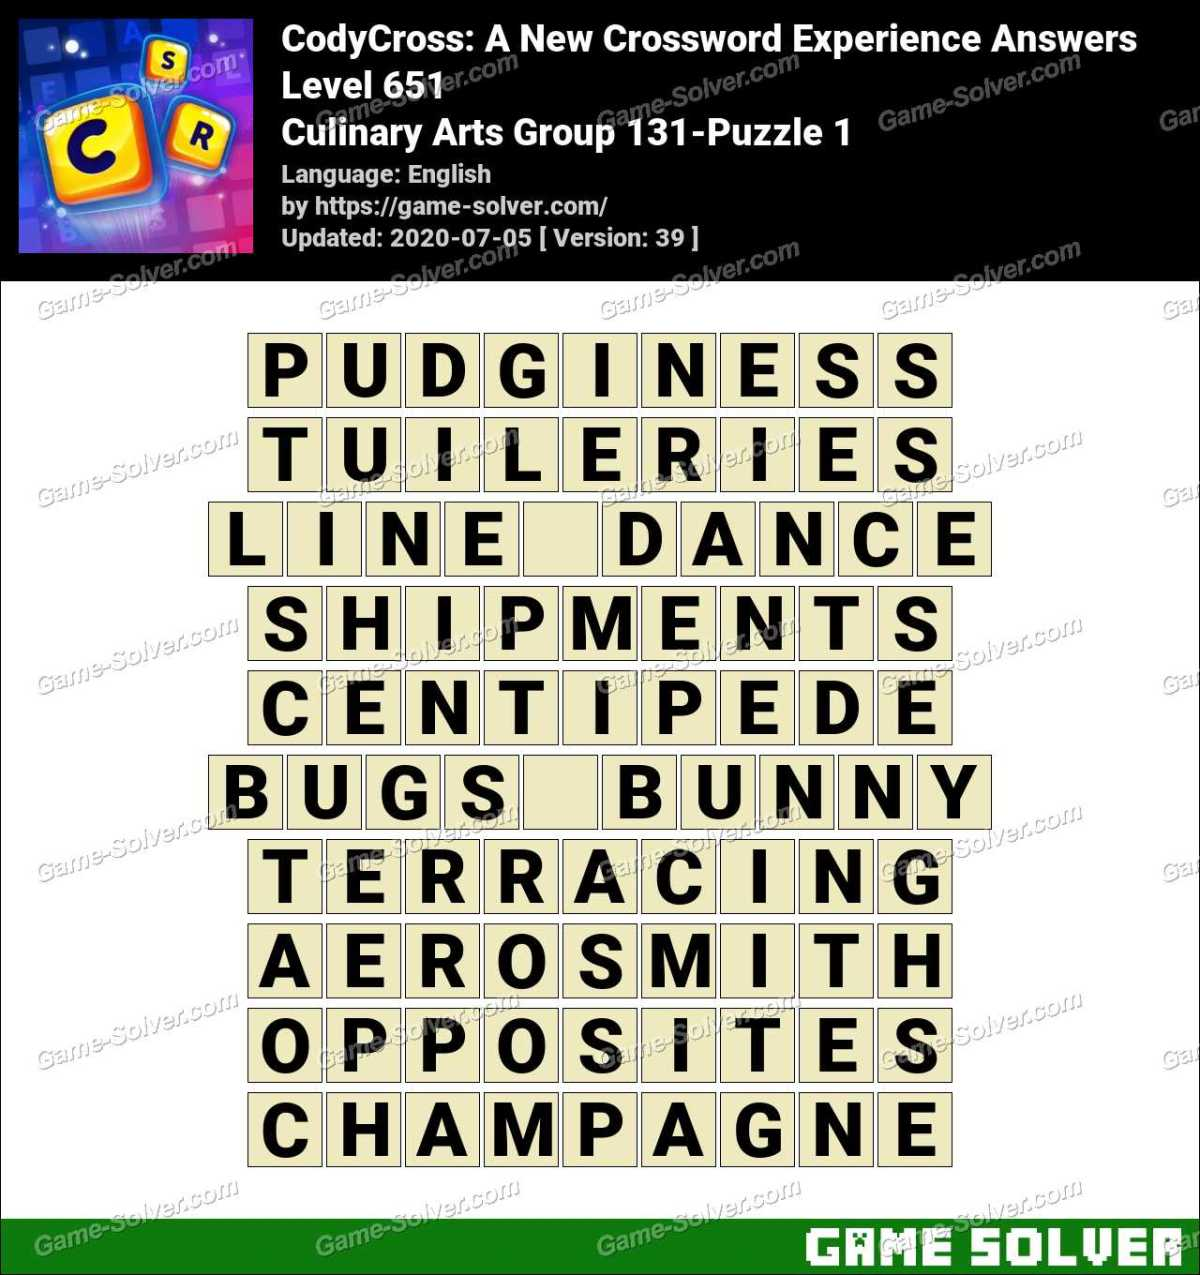 CodyCross Culinary Arts Group 131-Puzzle 1 Answers